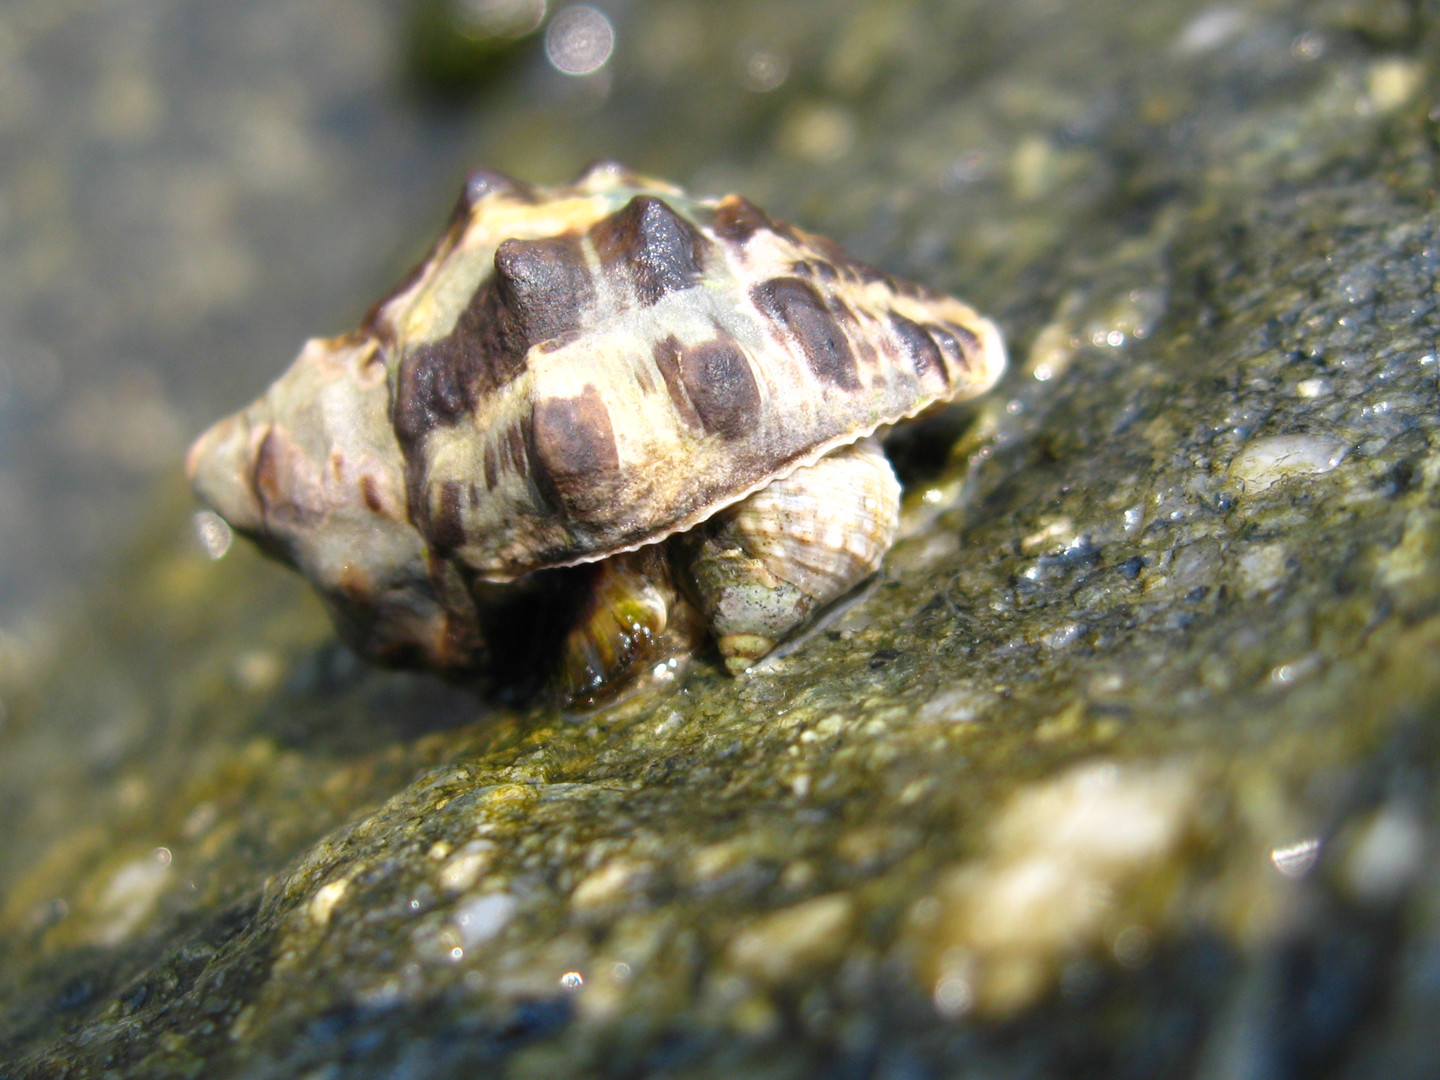 A dogwhelk feeding on a littorinid